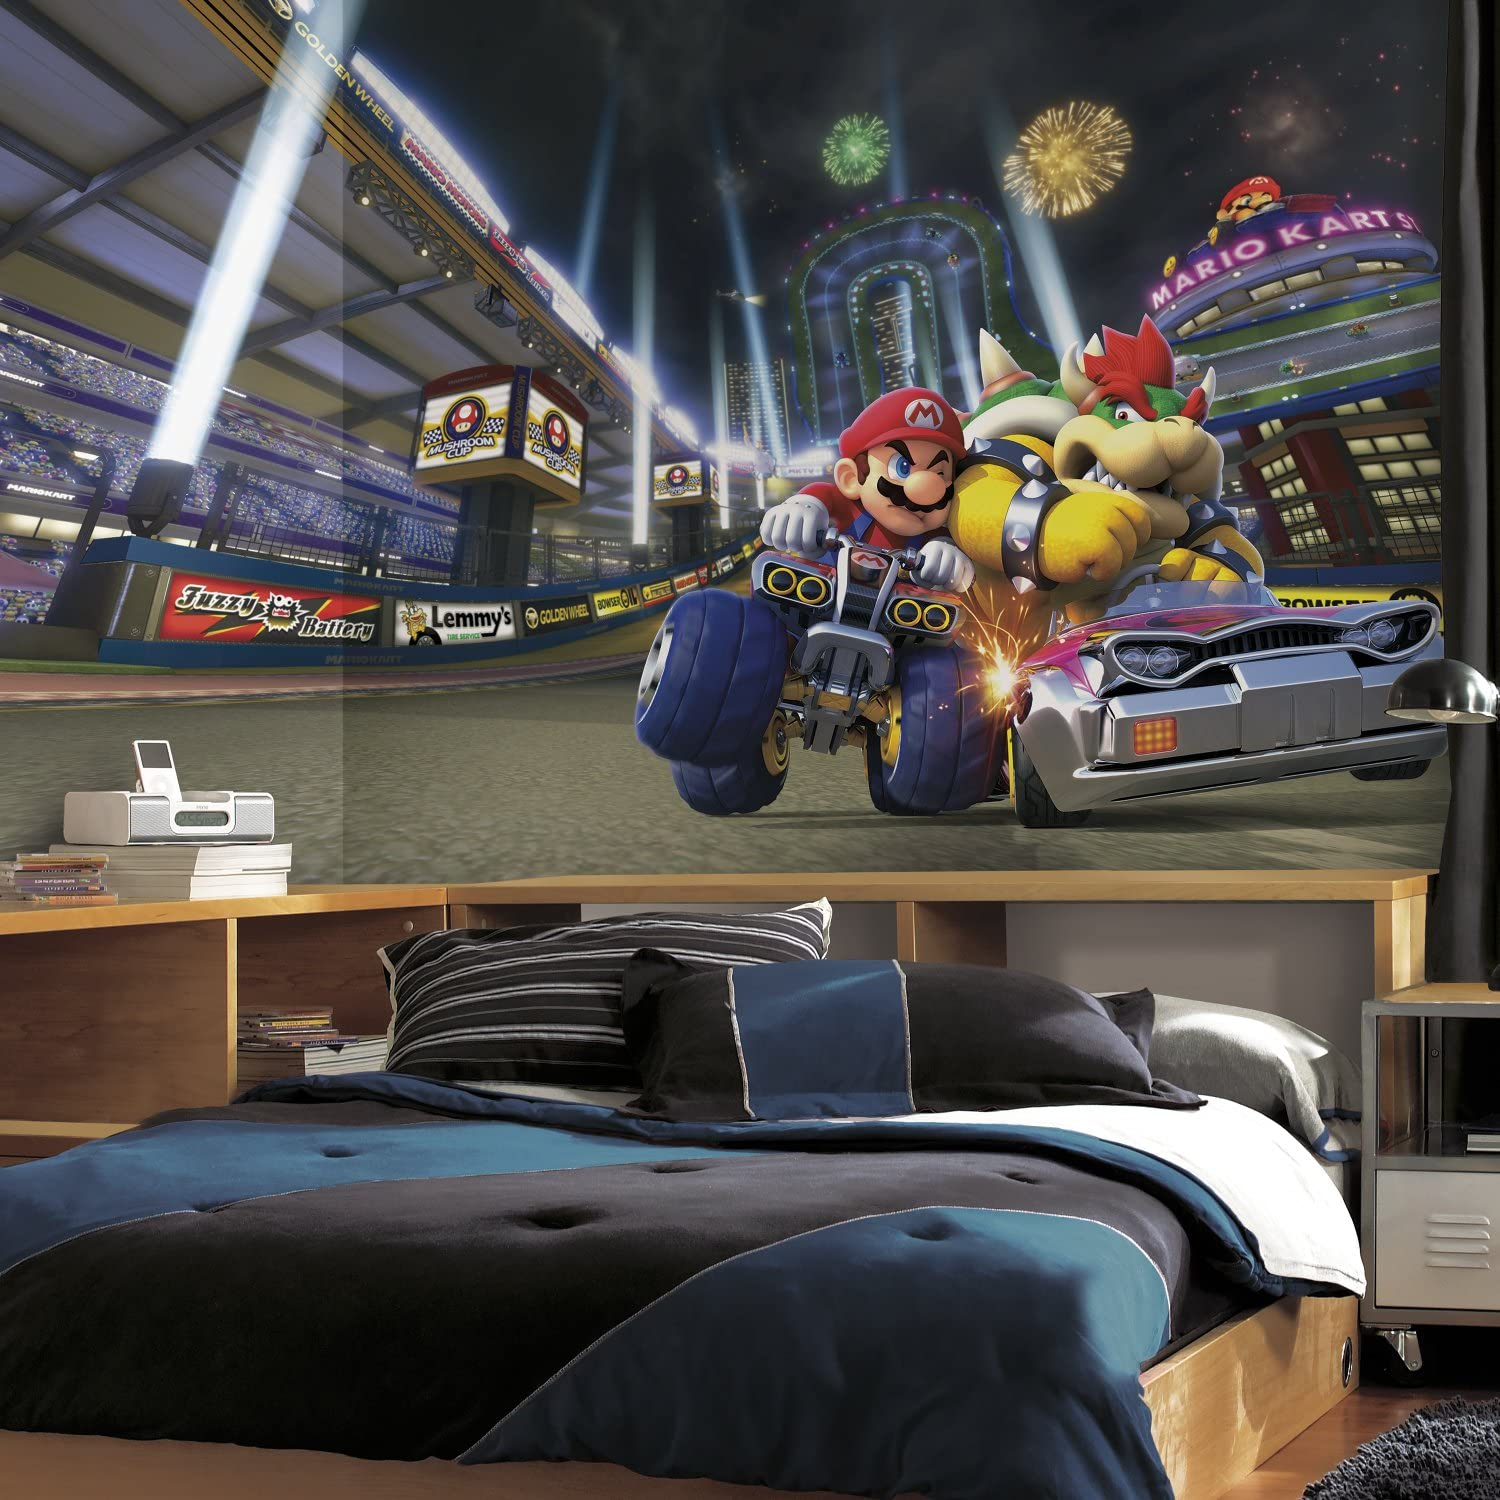 RoomMates Nintendo - Mario Kart 8 Removable Wall Mural - 10.5 feet X 6 feet,Multicolor